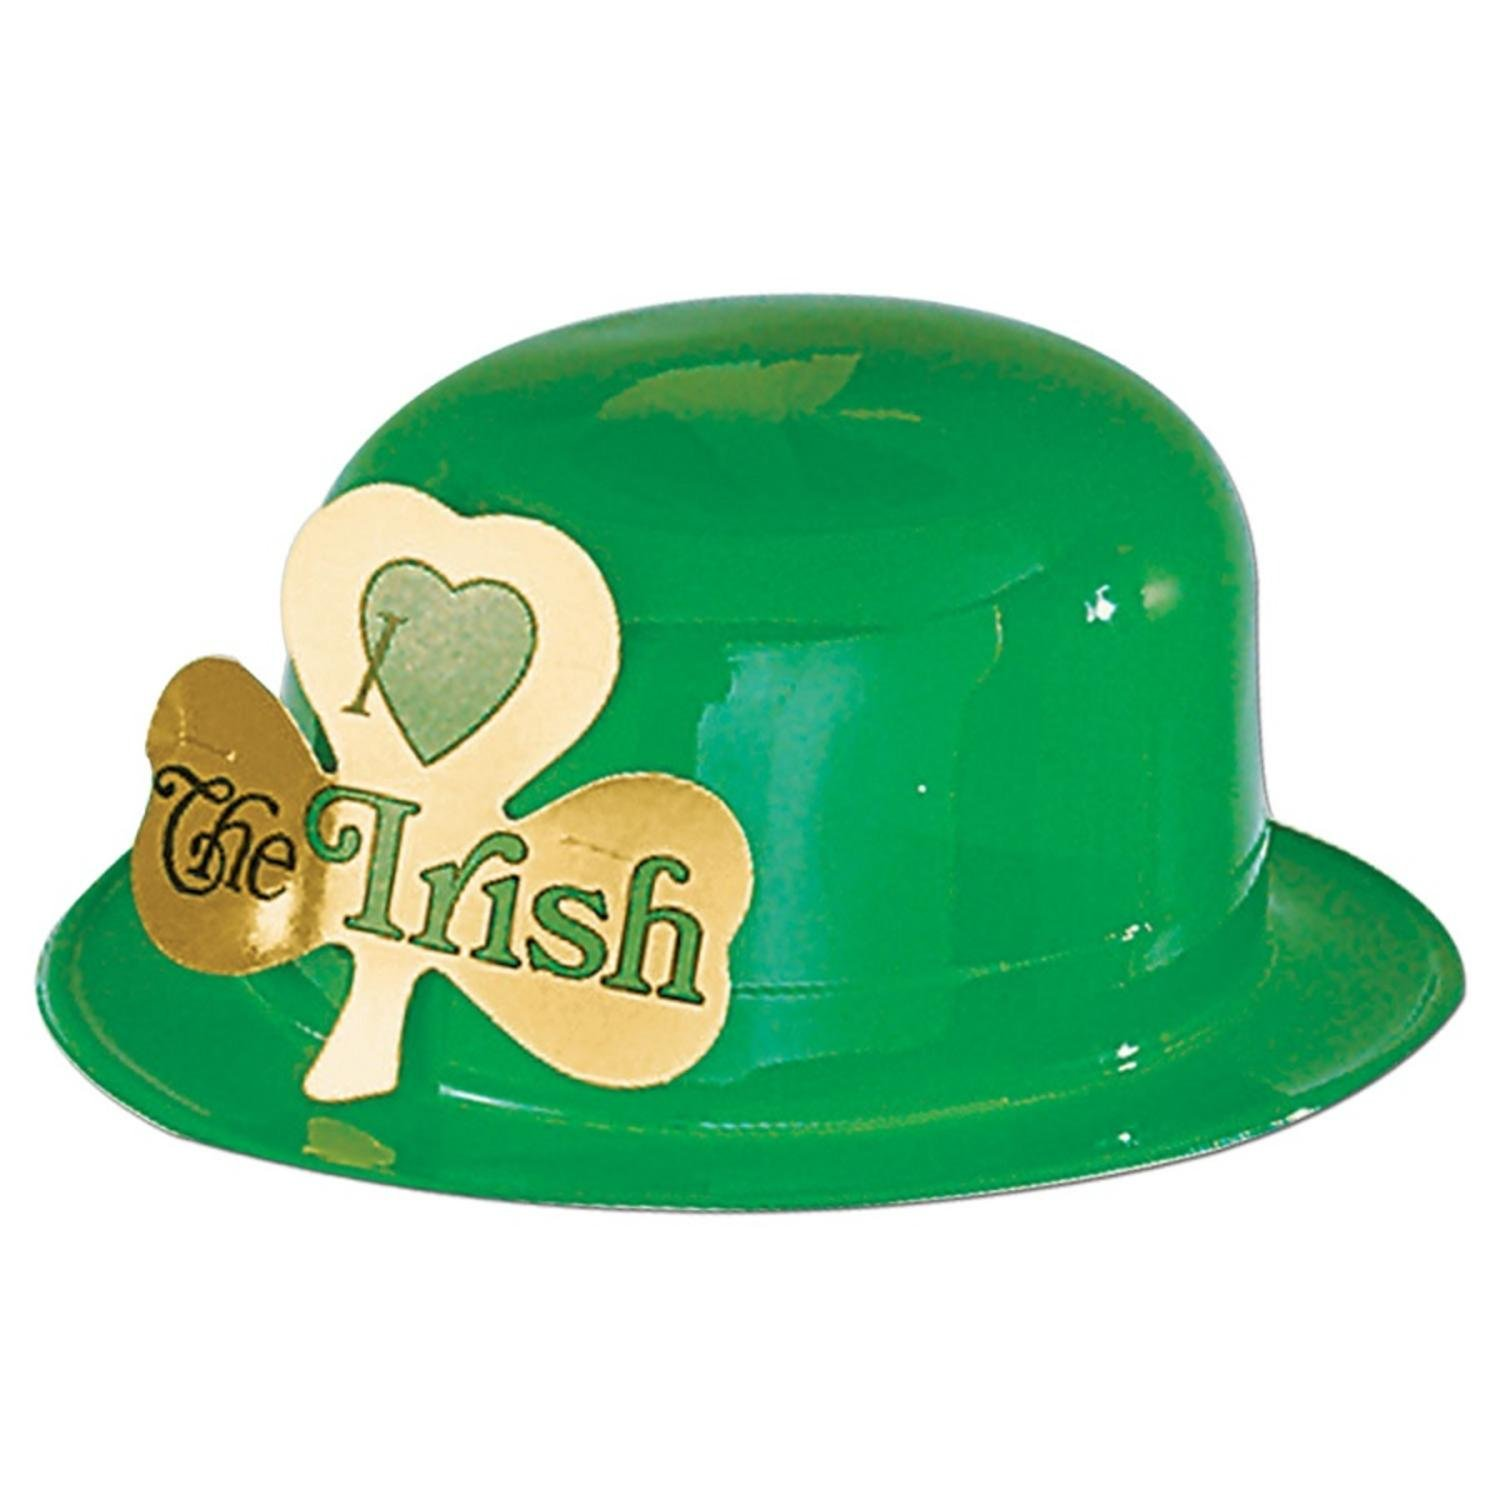 Pack of 24 I Love the Irish Green Derby Hat St. Patrick's Day Party Favors